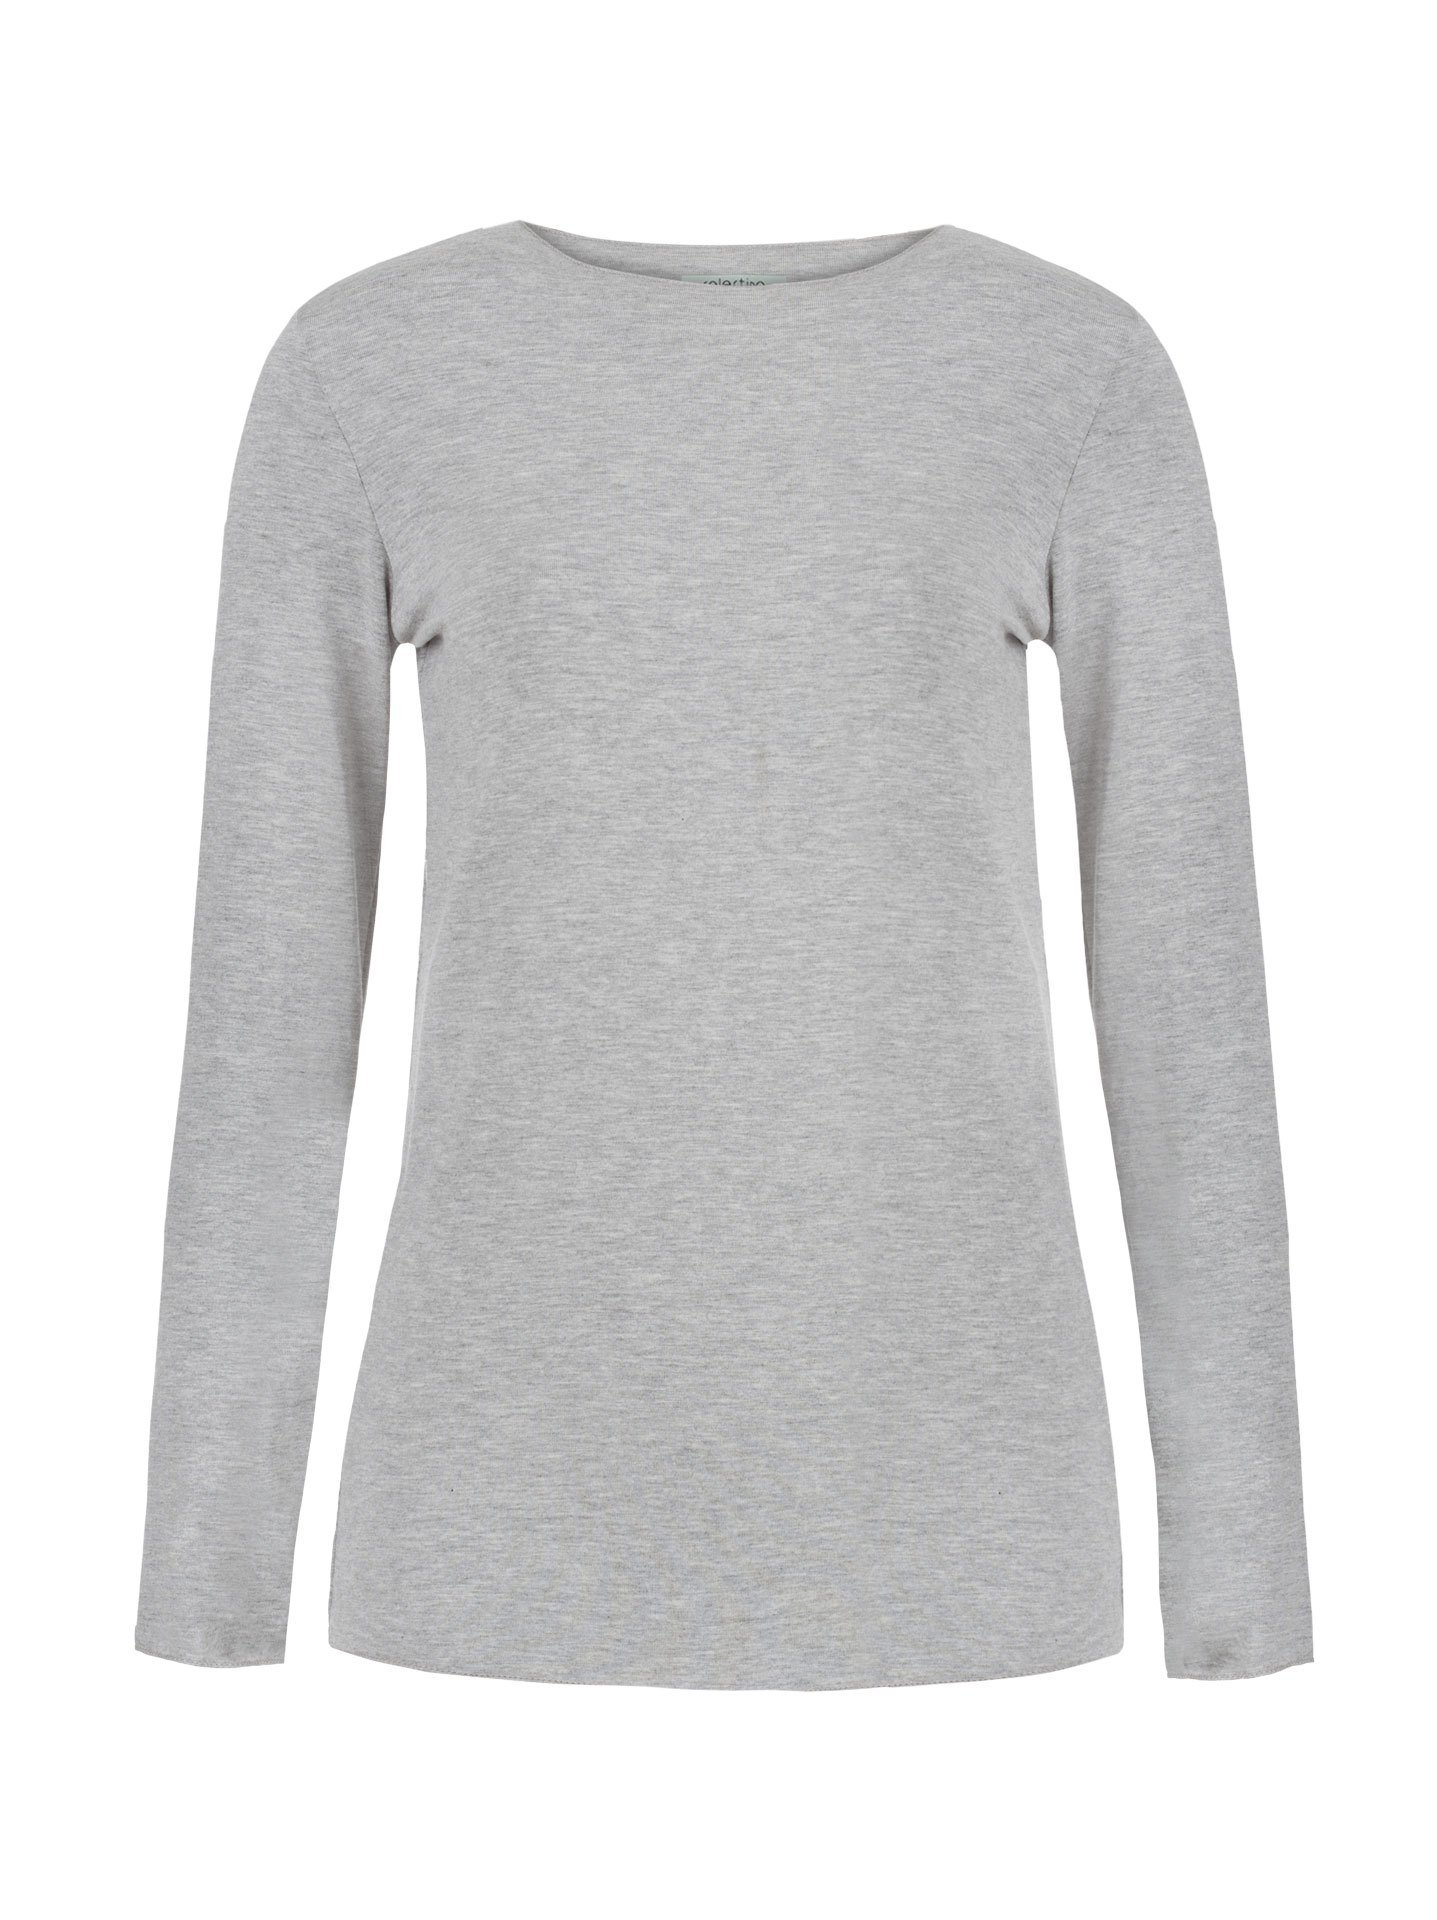 447c09ed300a4b Long sleeve top in light grey, 9.80€ | Celestino